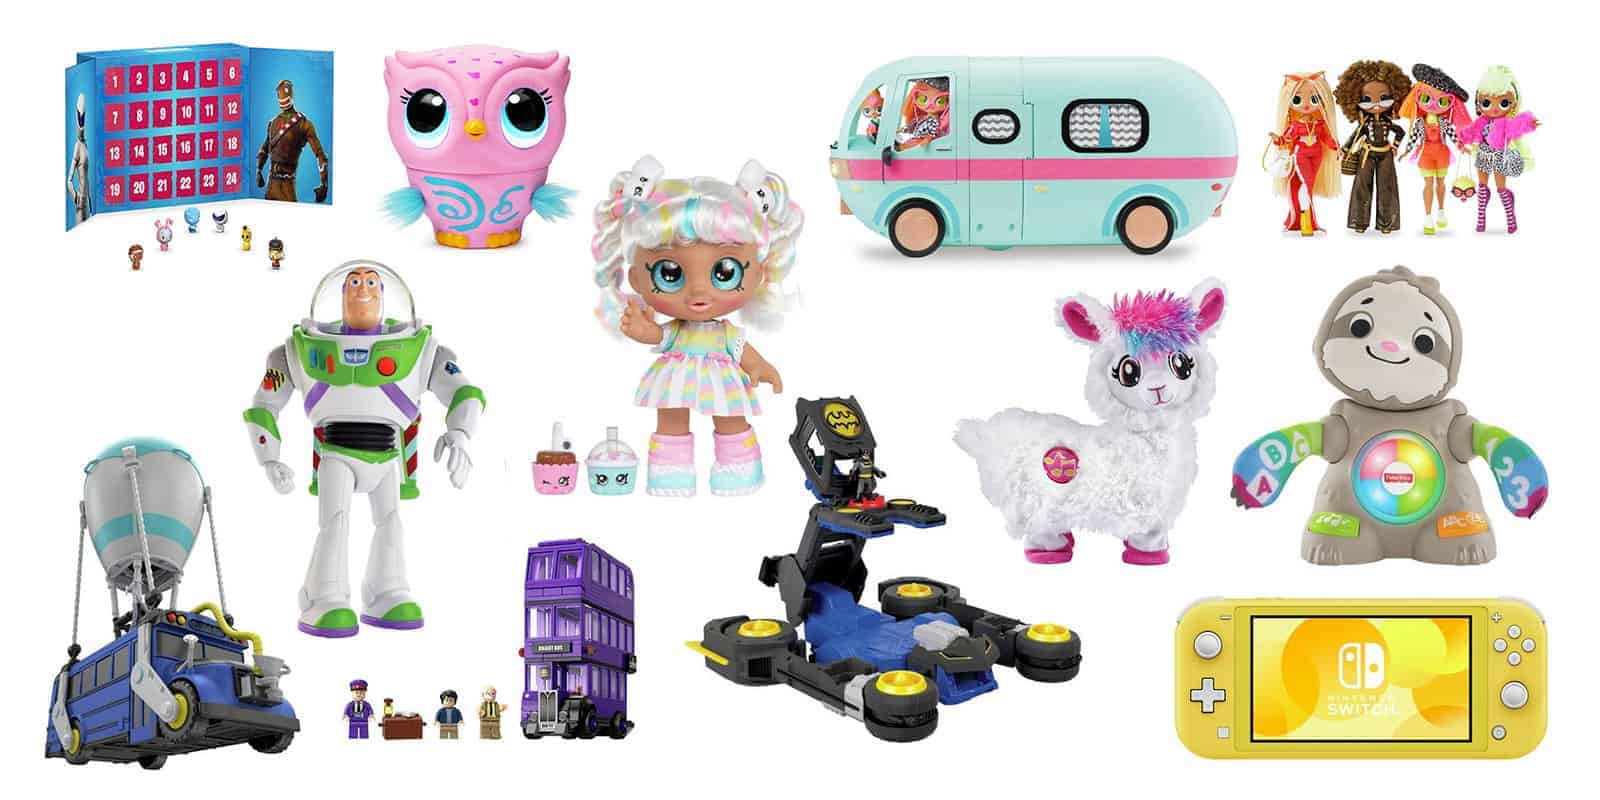 Top 20 Christmas Toys 2019: The must have Christmas toys for boys & girls